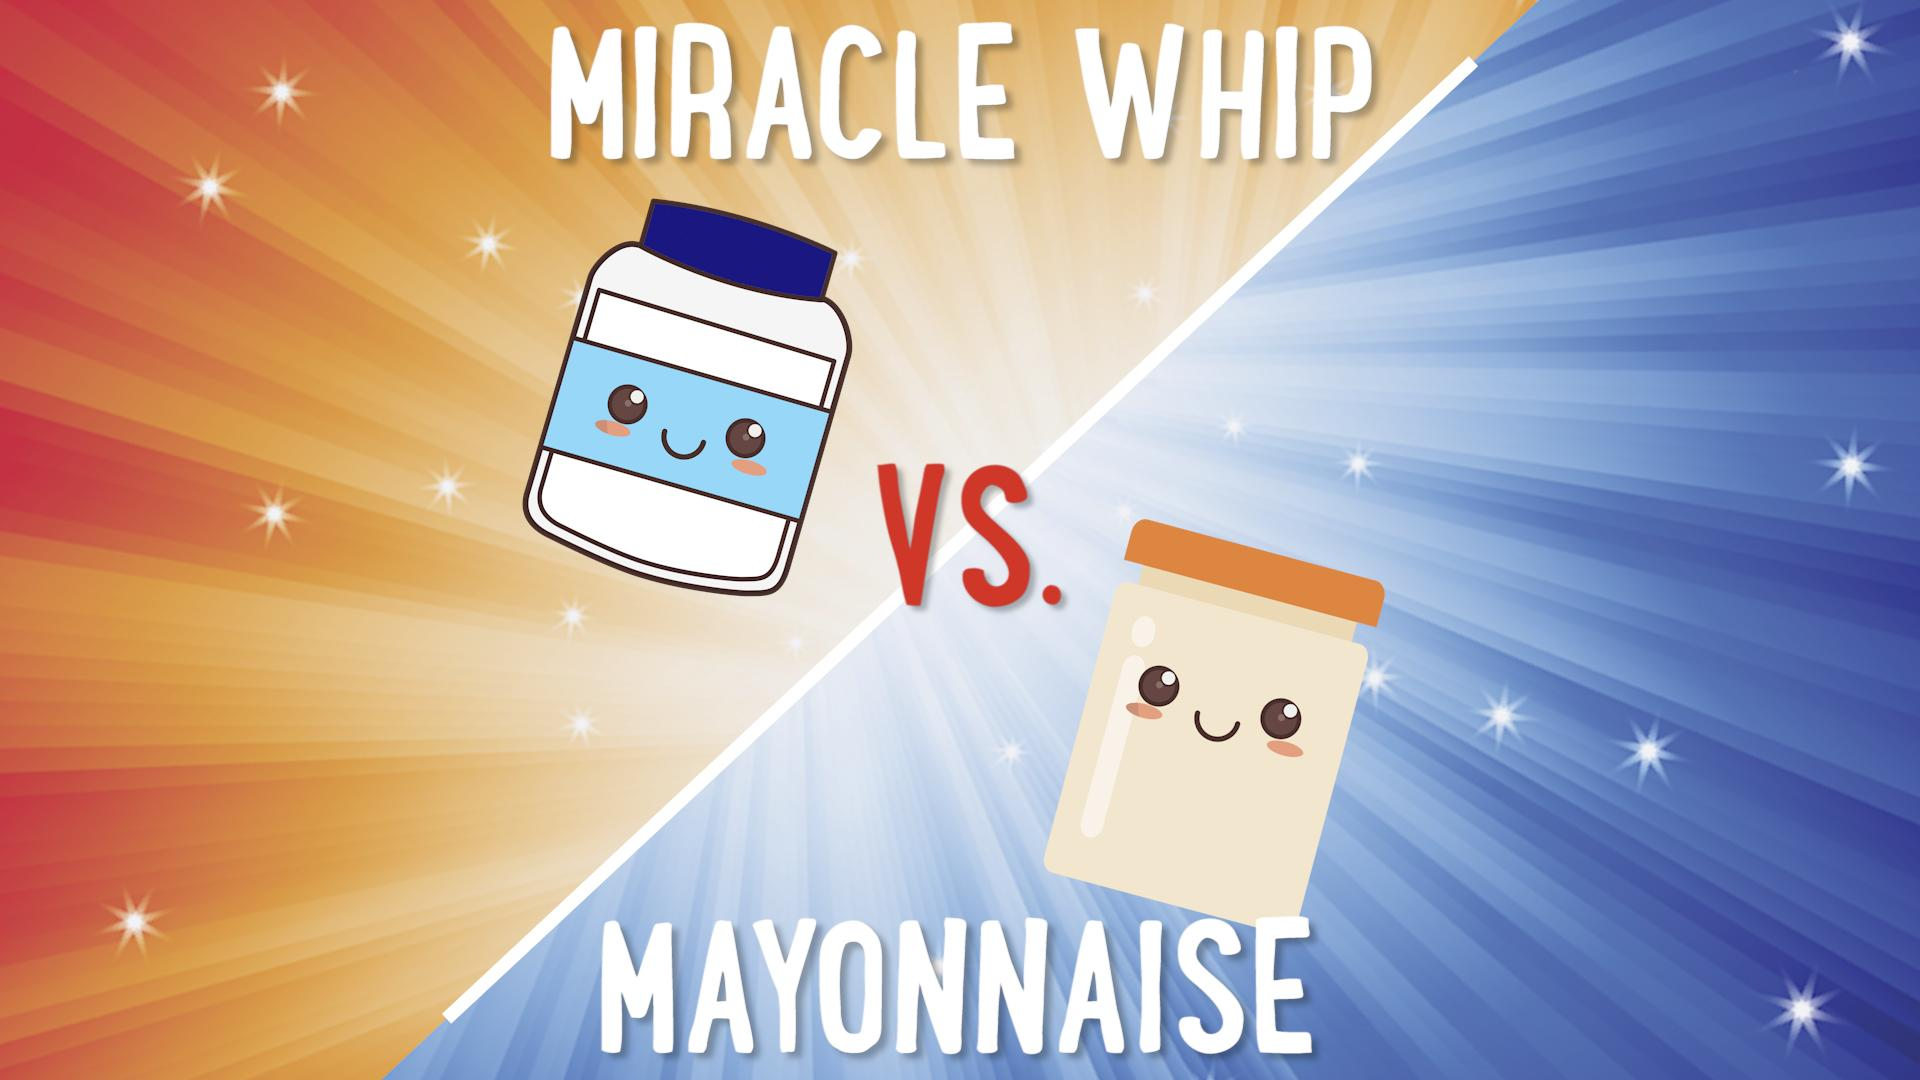 Ritzy Mayonnaise Vs Miracle Whip Video Myrecipes Miracle Whip Vs Mayo Sales Miracle Whip Vs Mayo Deviled Eggs nice food Miracle Whip Vs Mayo